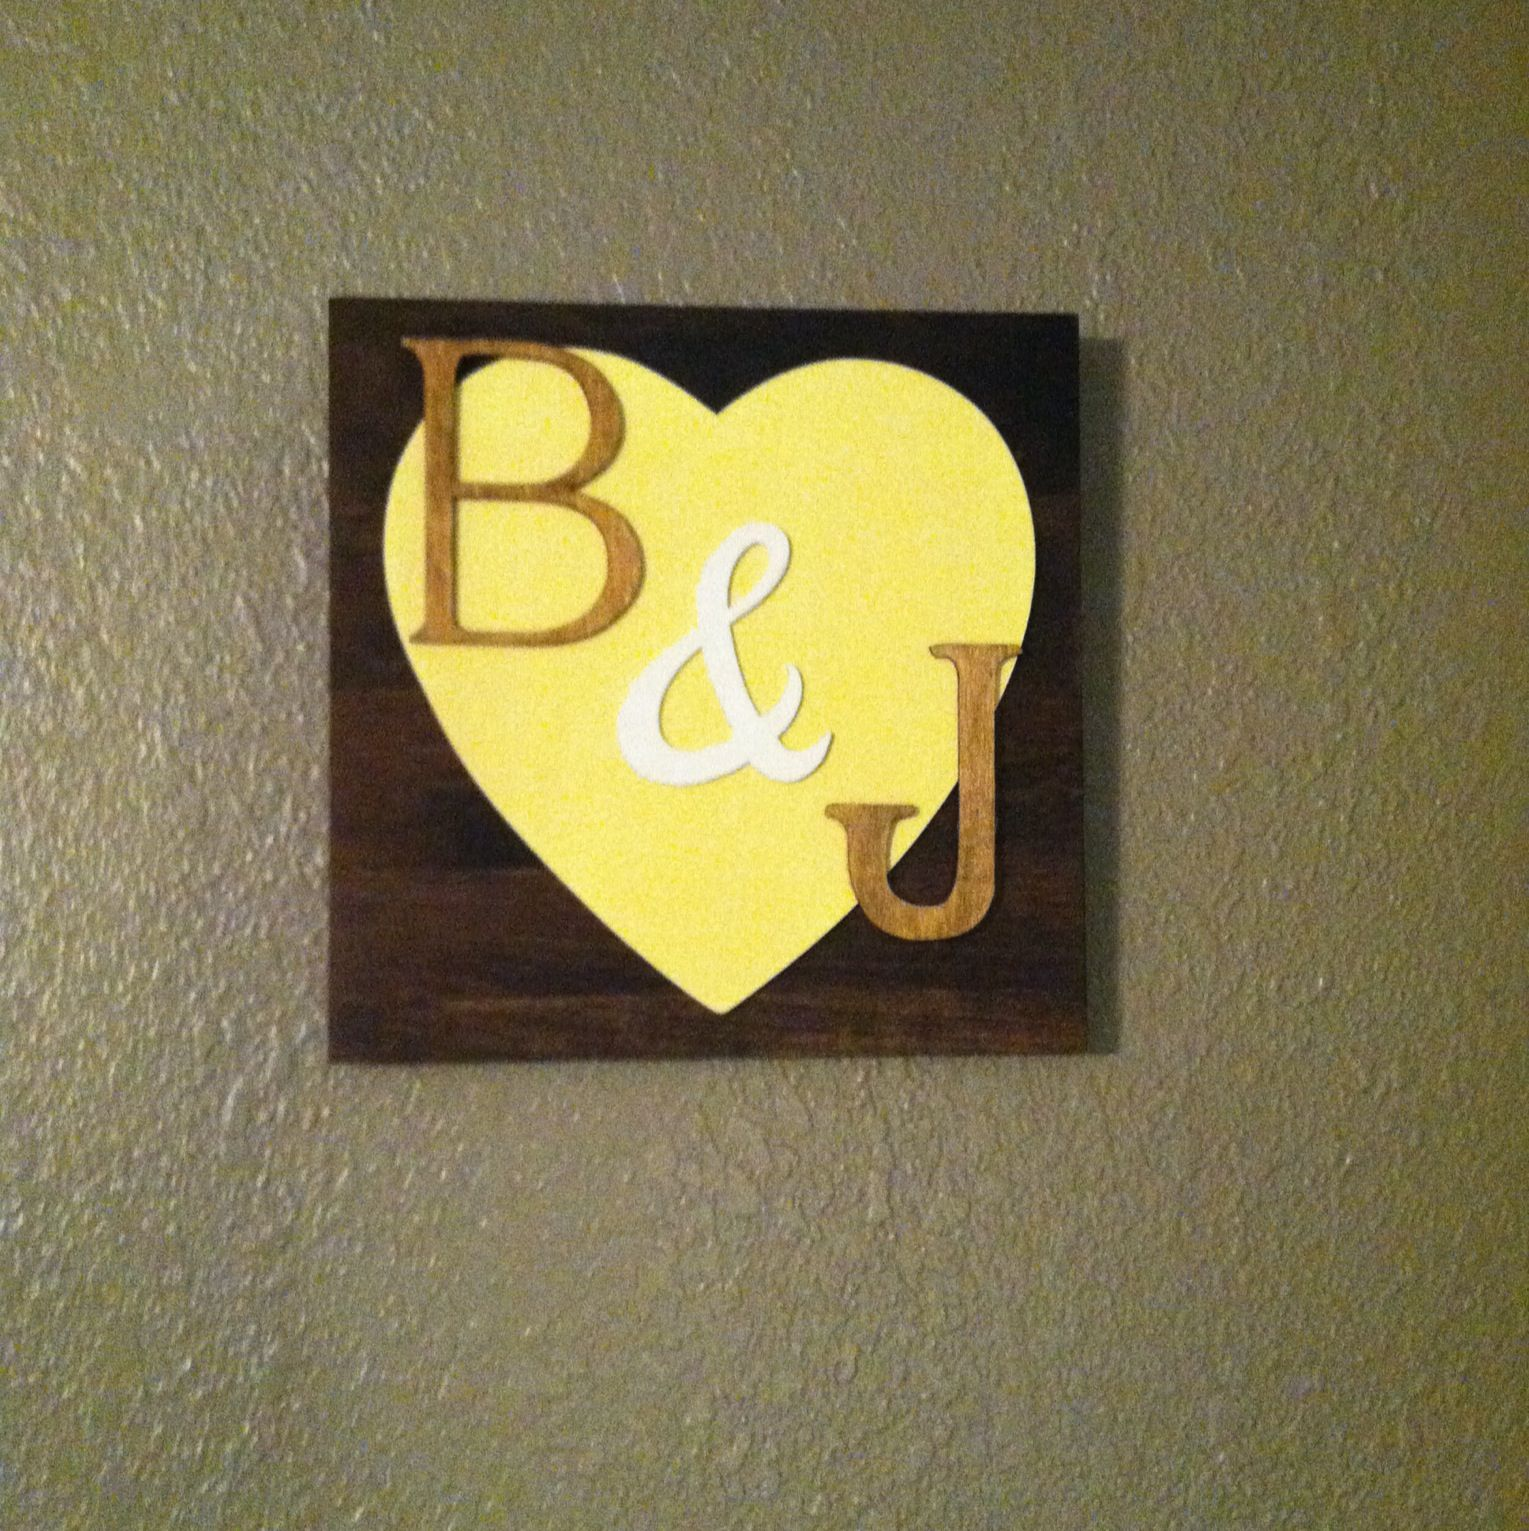 Nice Ampersand Wall Art Composition - All About Wallart - adelgazare ...